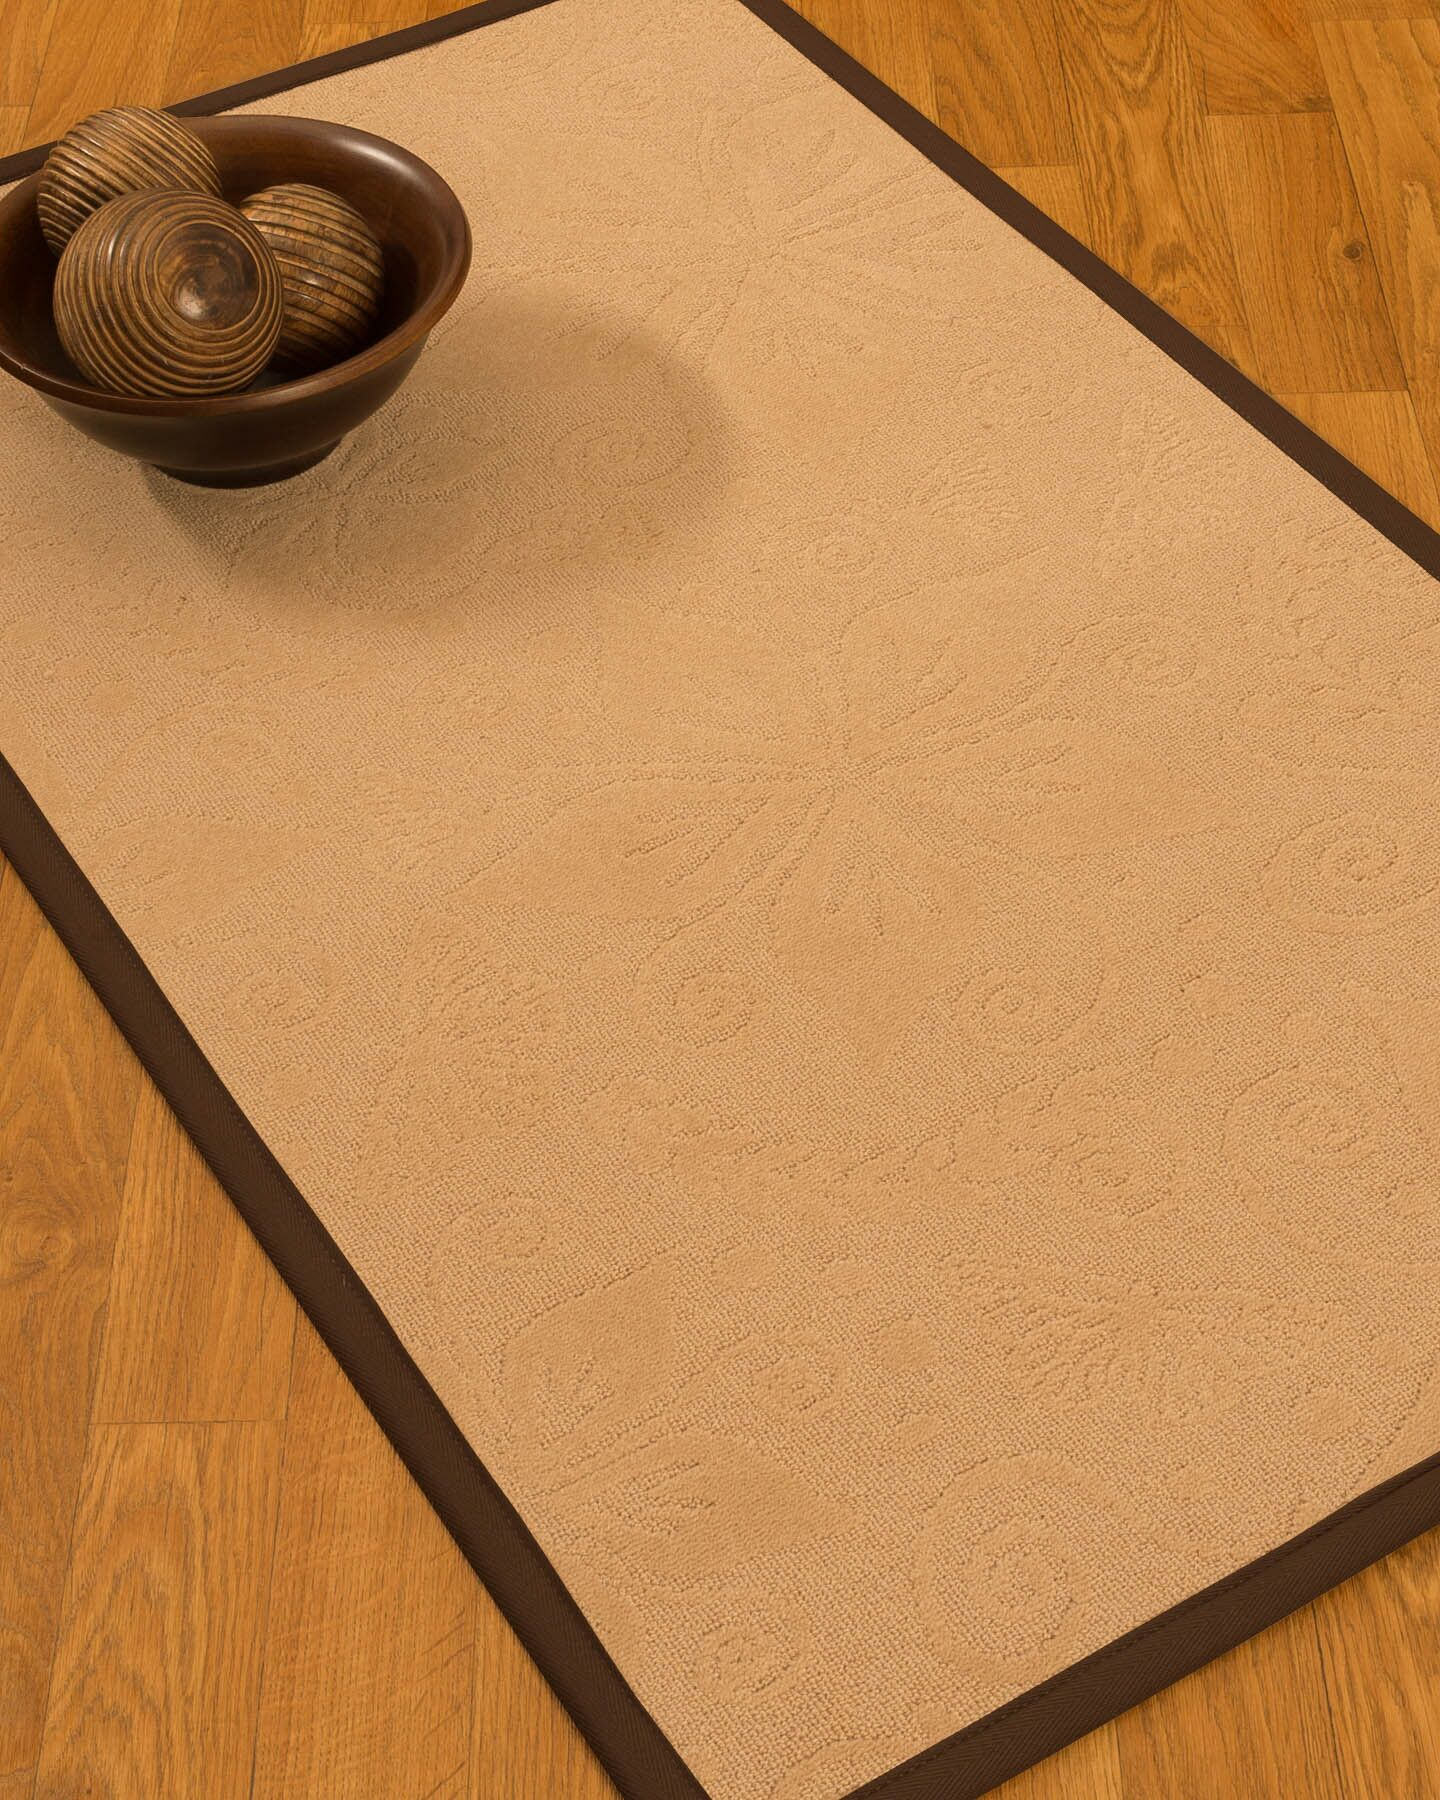 Vanmeter Border Hand-Woven Wool Beige/Brown Area Rug Rug Size: Rectangle 6' x 9', Rug Pad Included: Yes